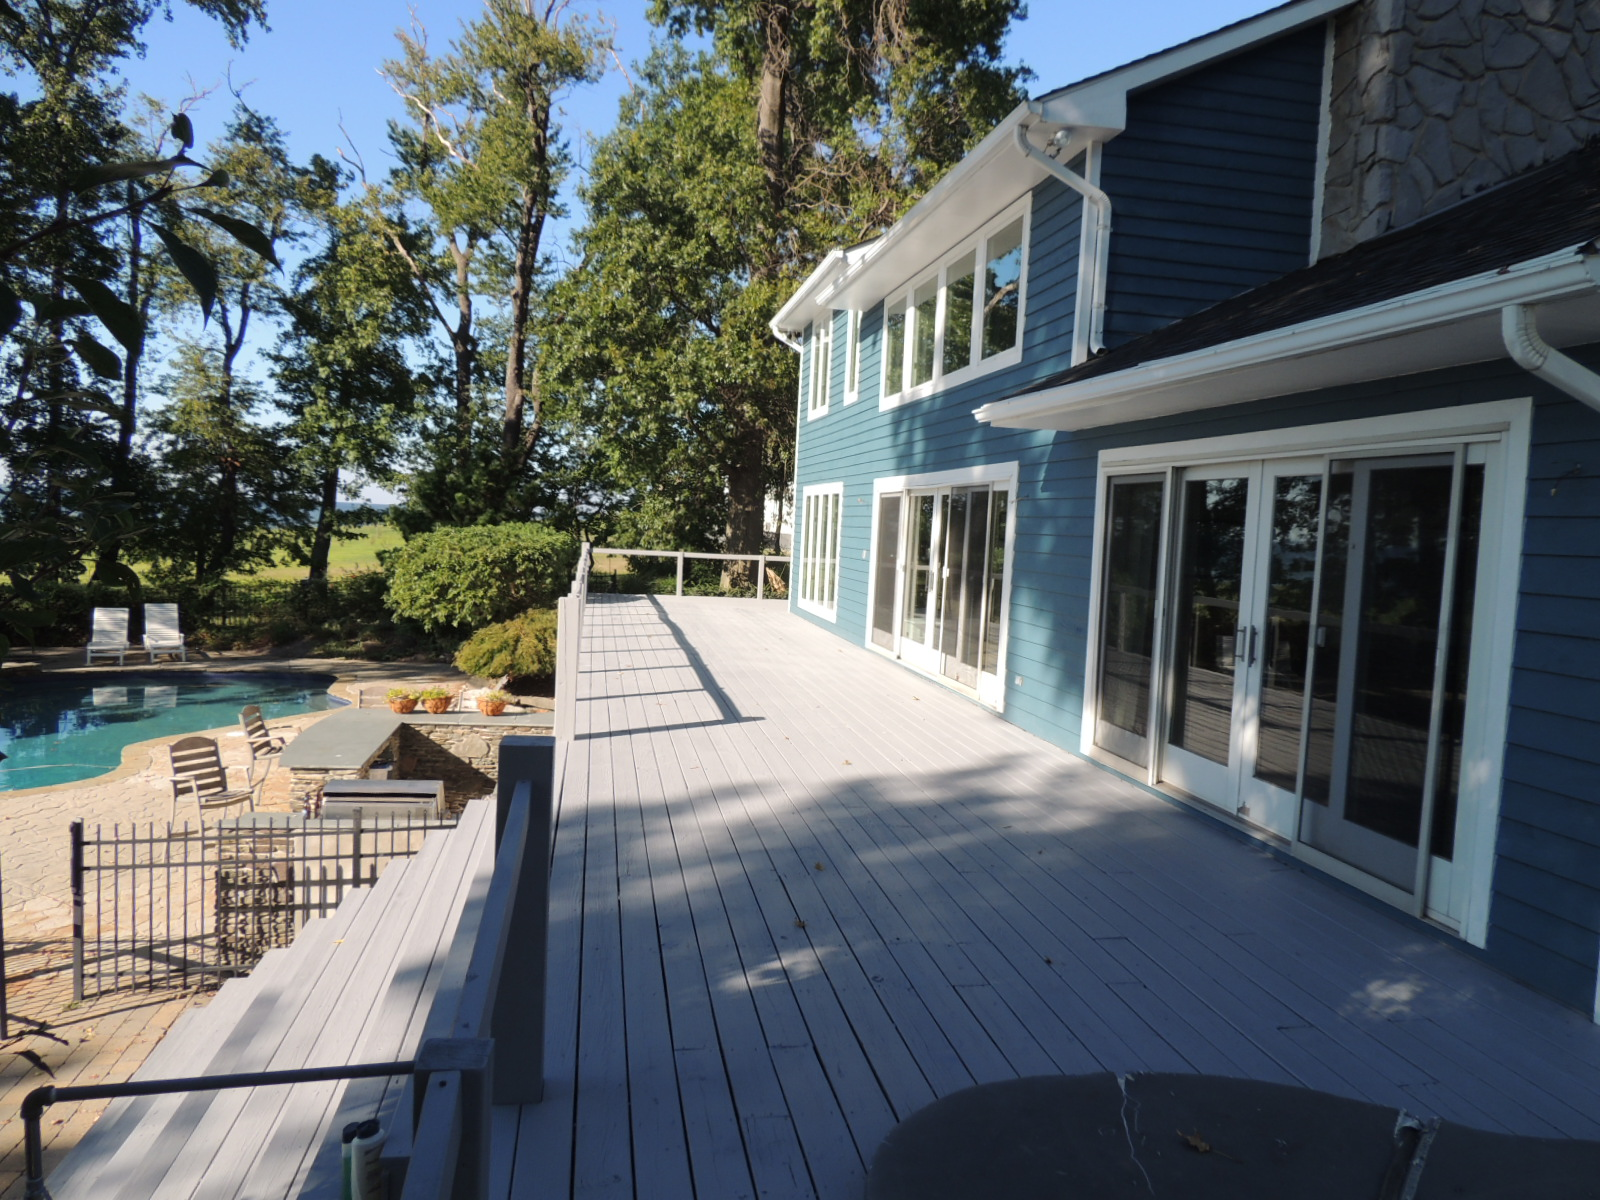 Paint prep exterior What is the best exterior paint for decks